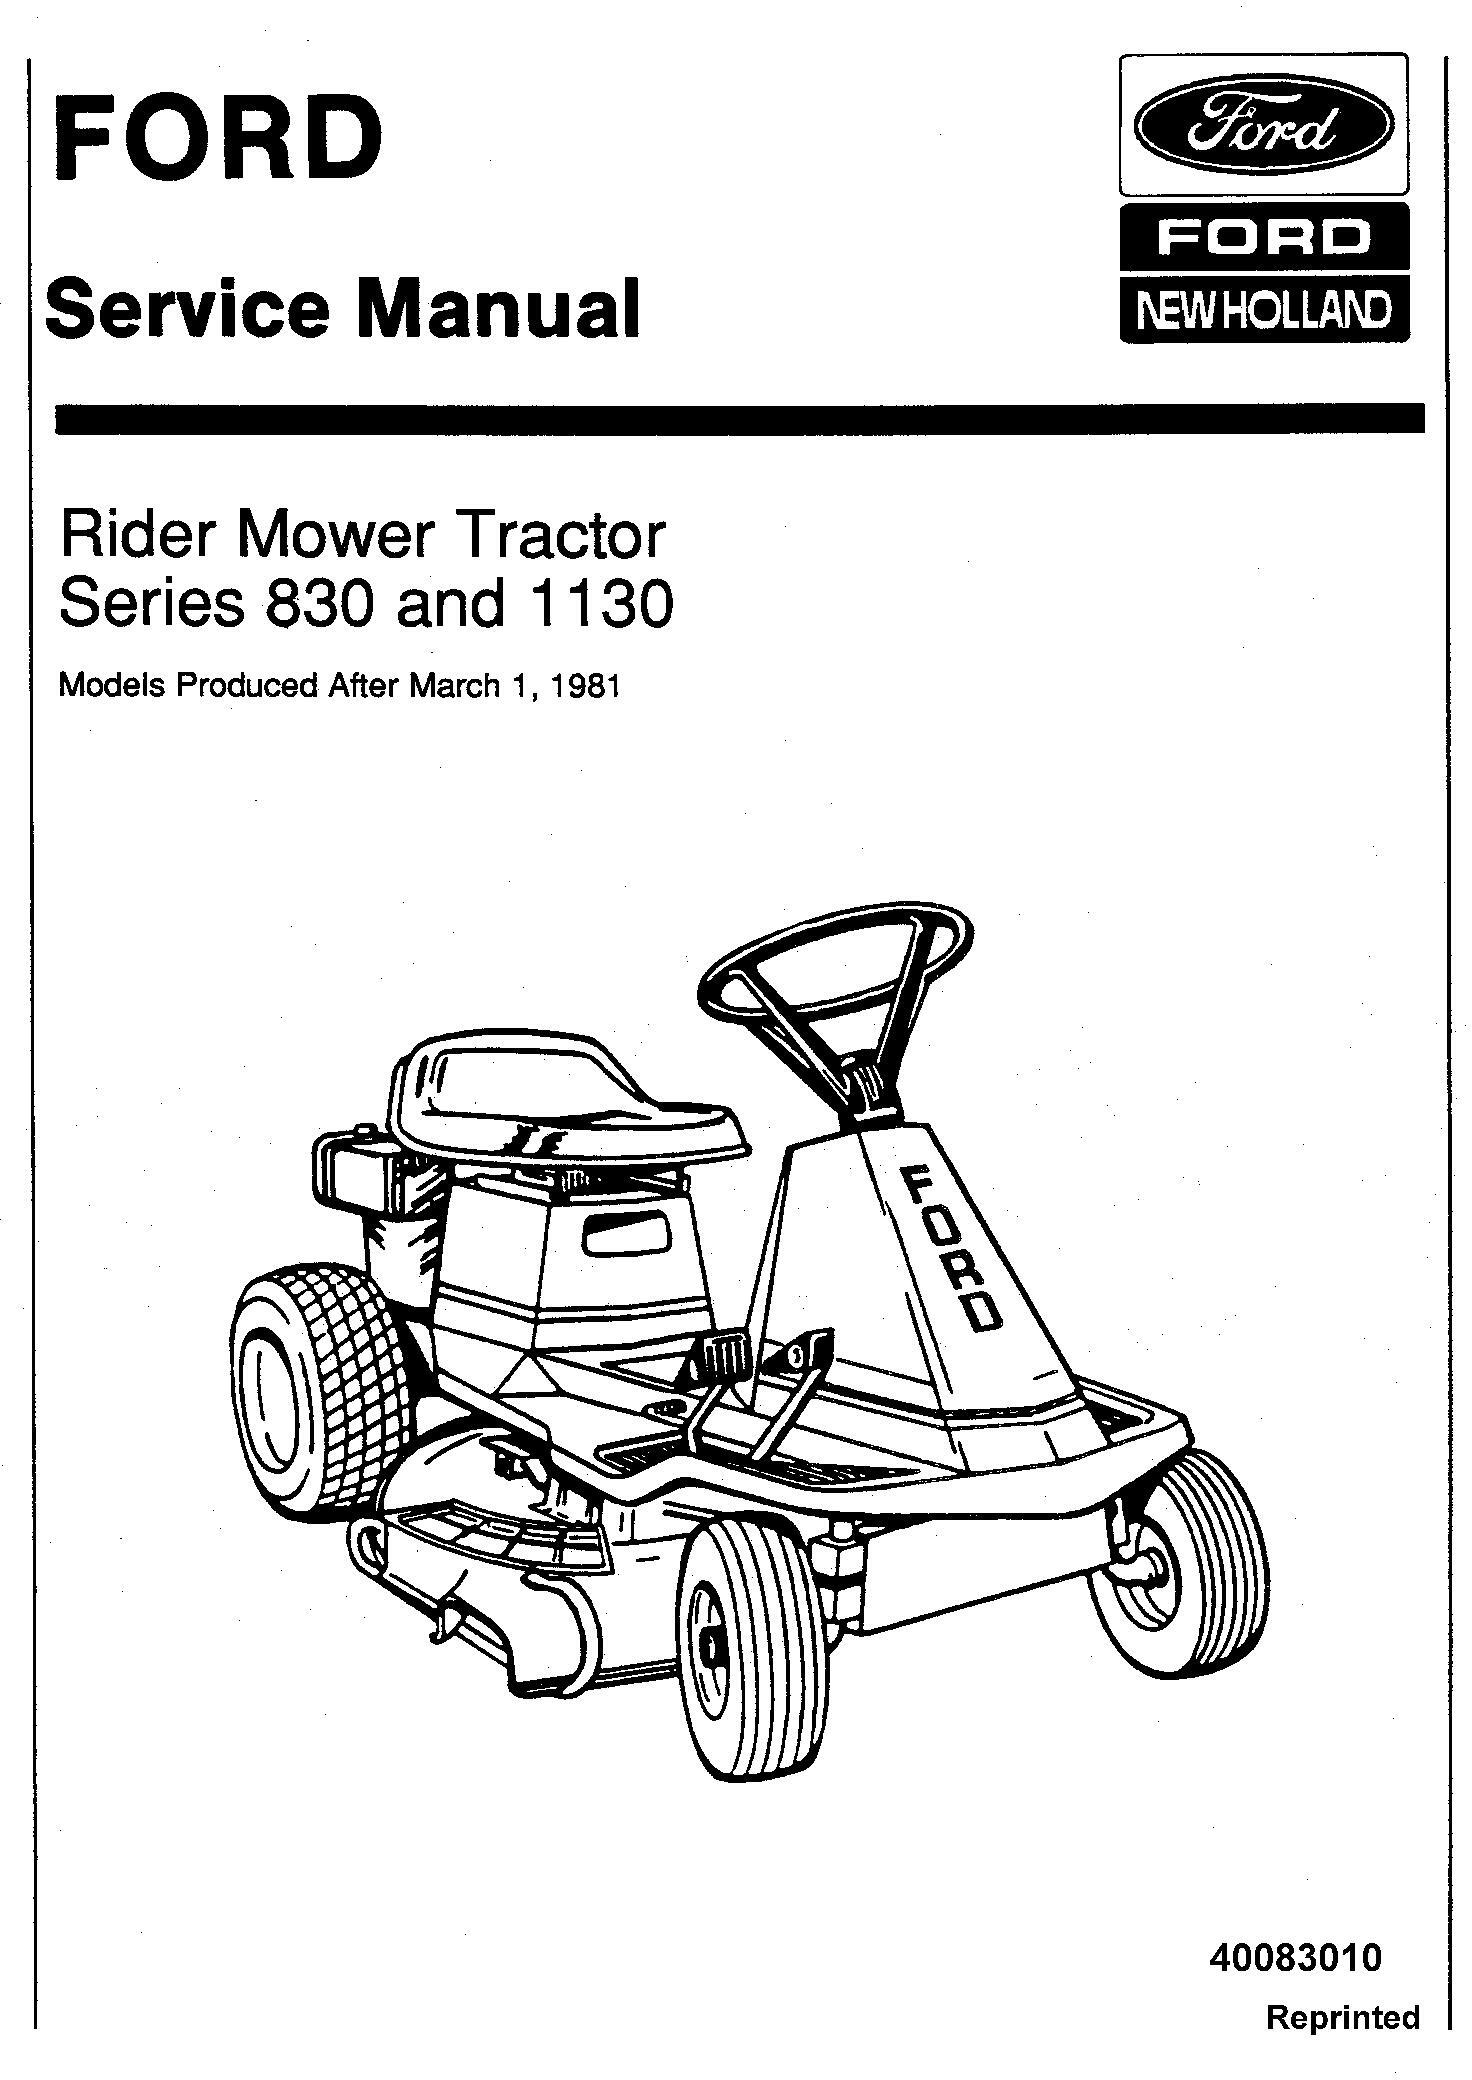 Ford 830 & 1130 Rider Mower Tractor Service Manual (SE3988